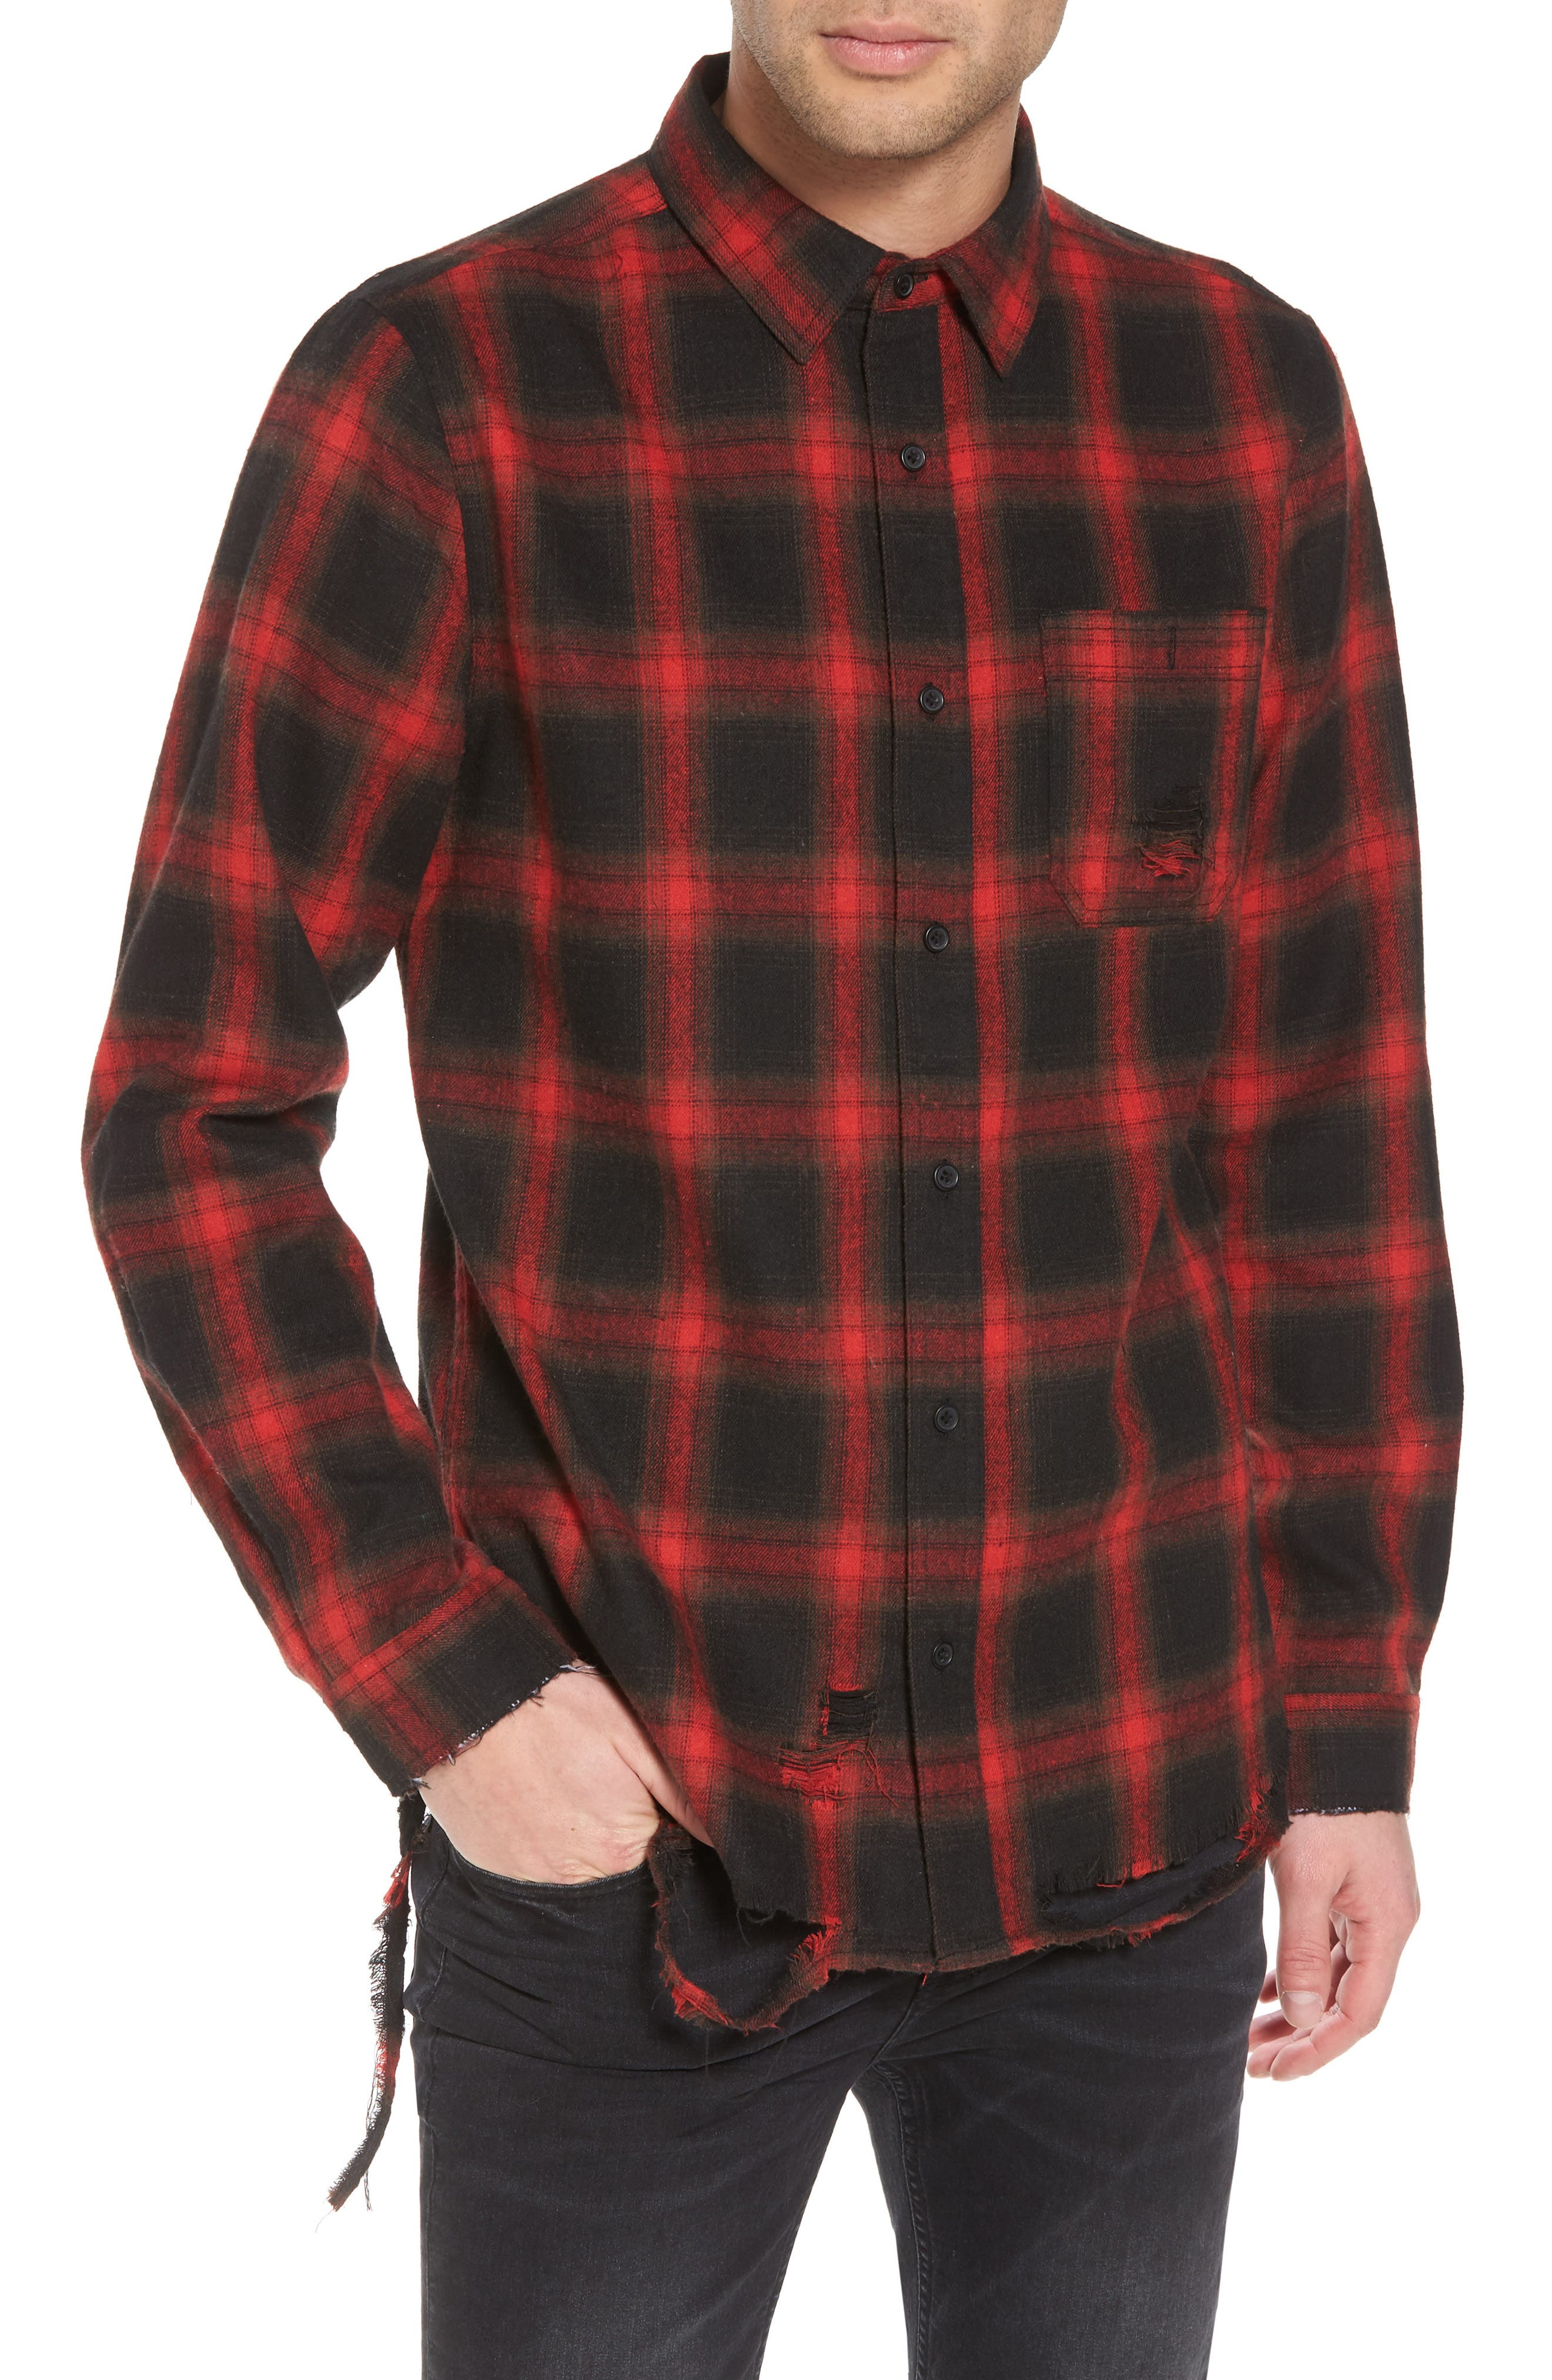 Shredded Plaid Flannel Shirt,                         Main,                         color, Black Rock Red Ombre Check